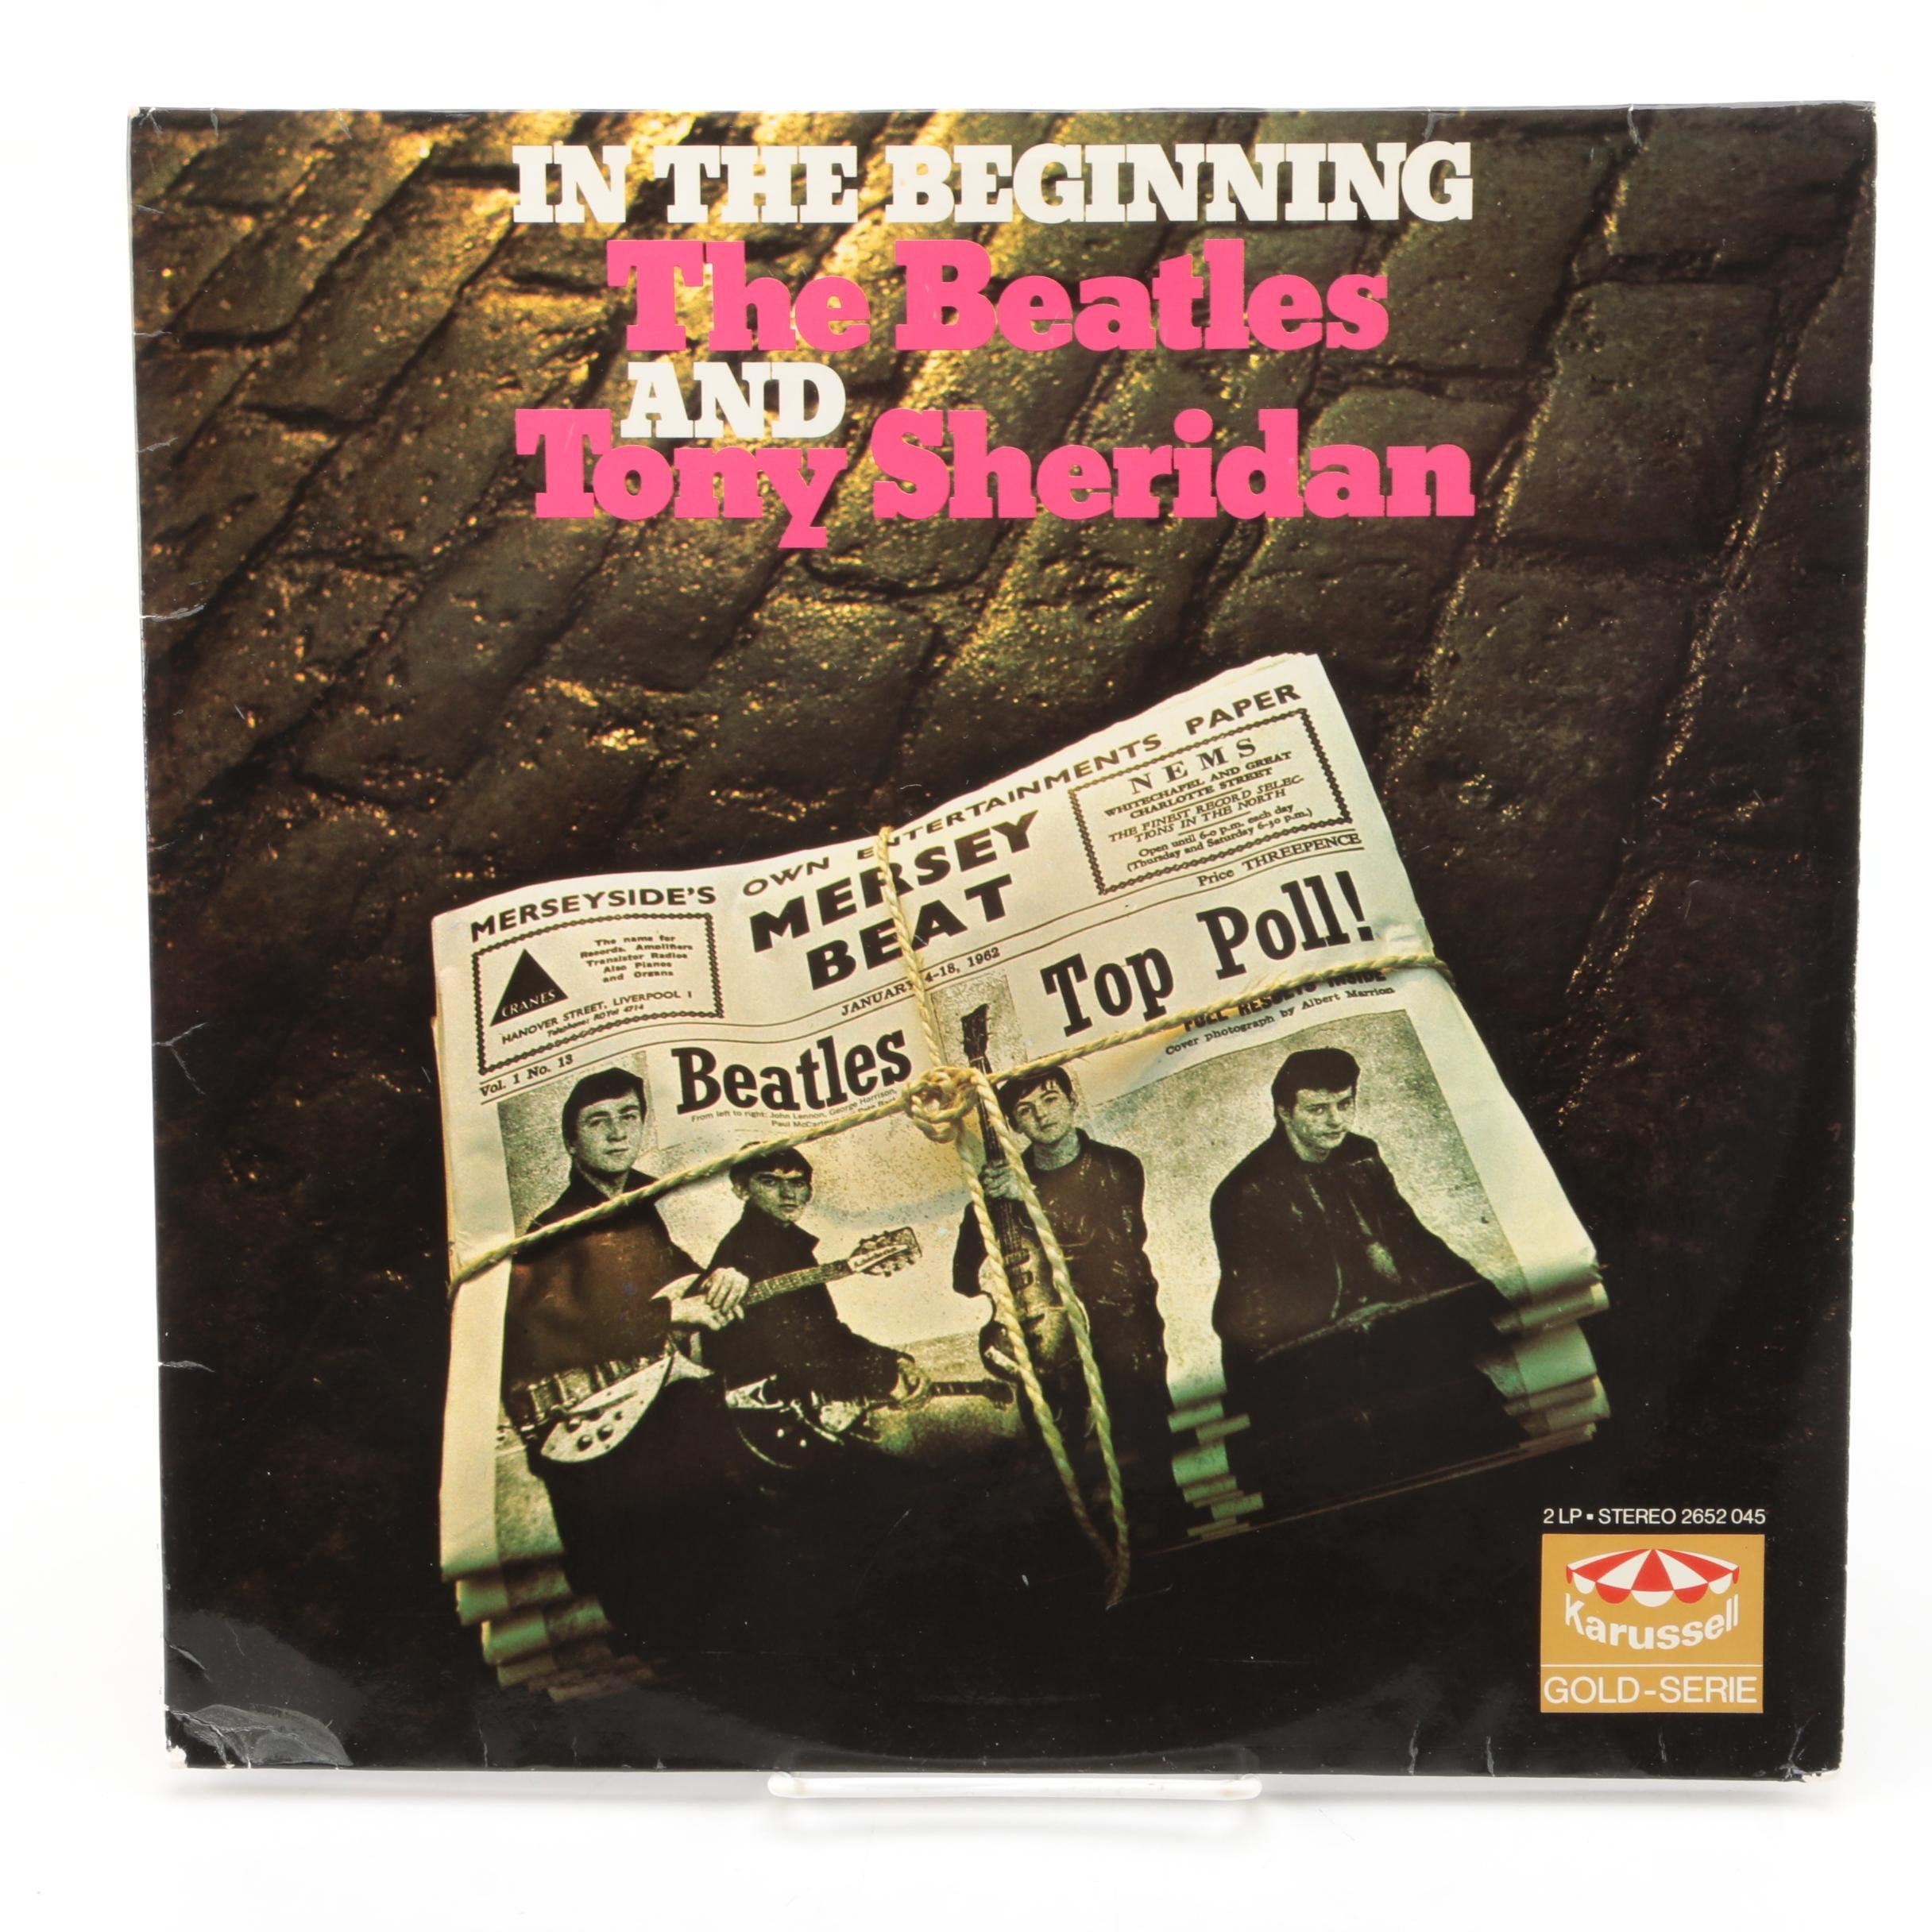 "The Beatles and Tony Sheridan ""In The Beginning"" Stereo German Pressing LP"